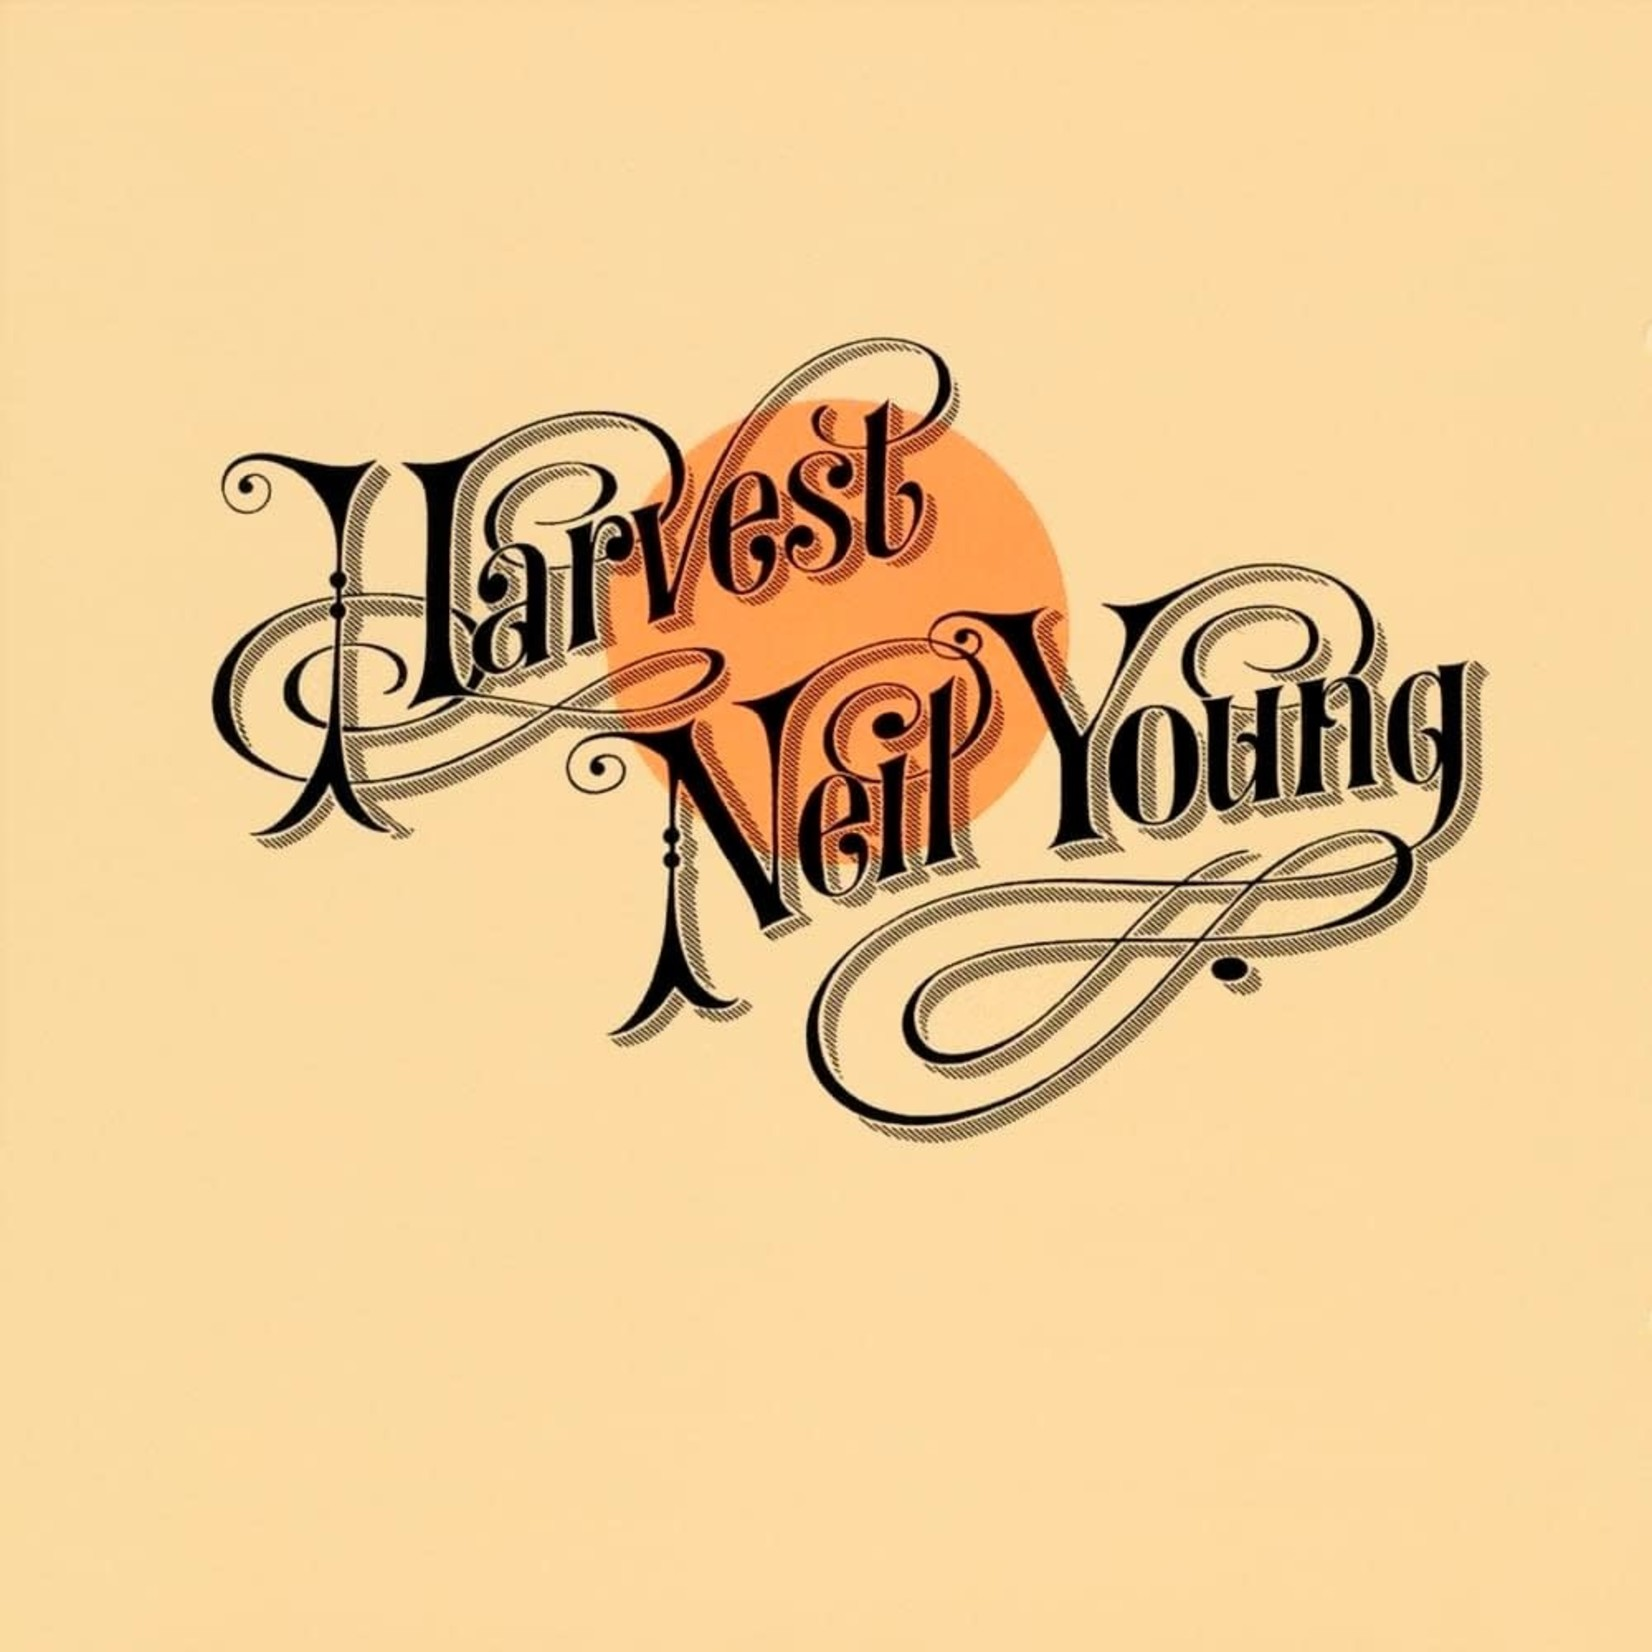 [New] Young, Neil: Harvest (Neil Young Archives Series)